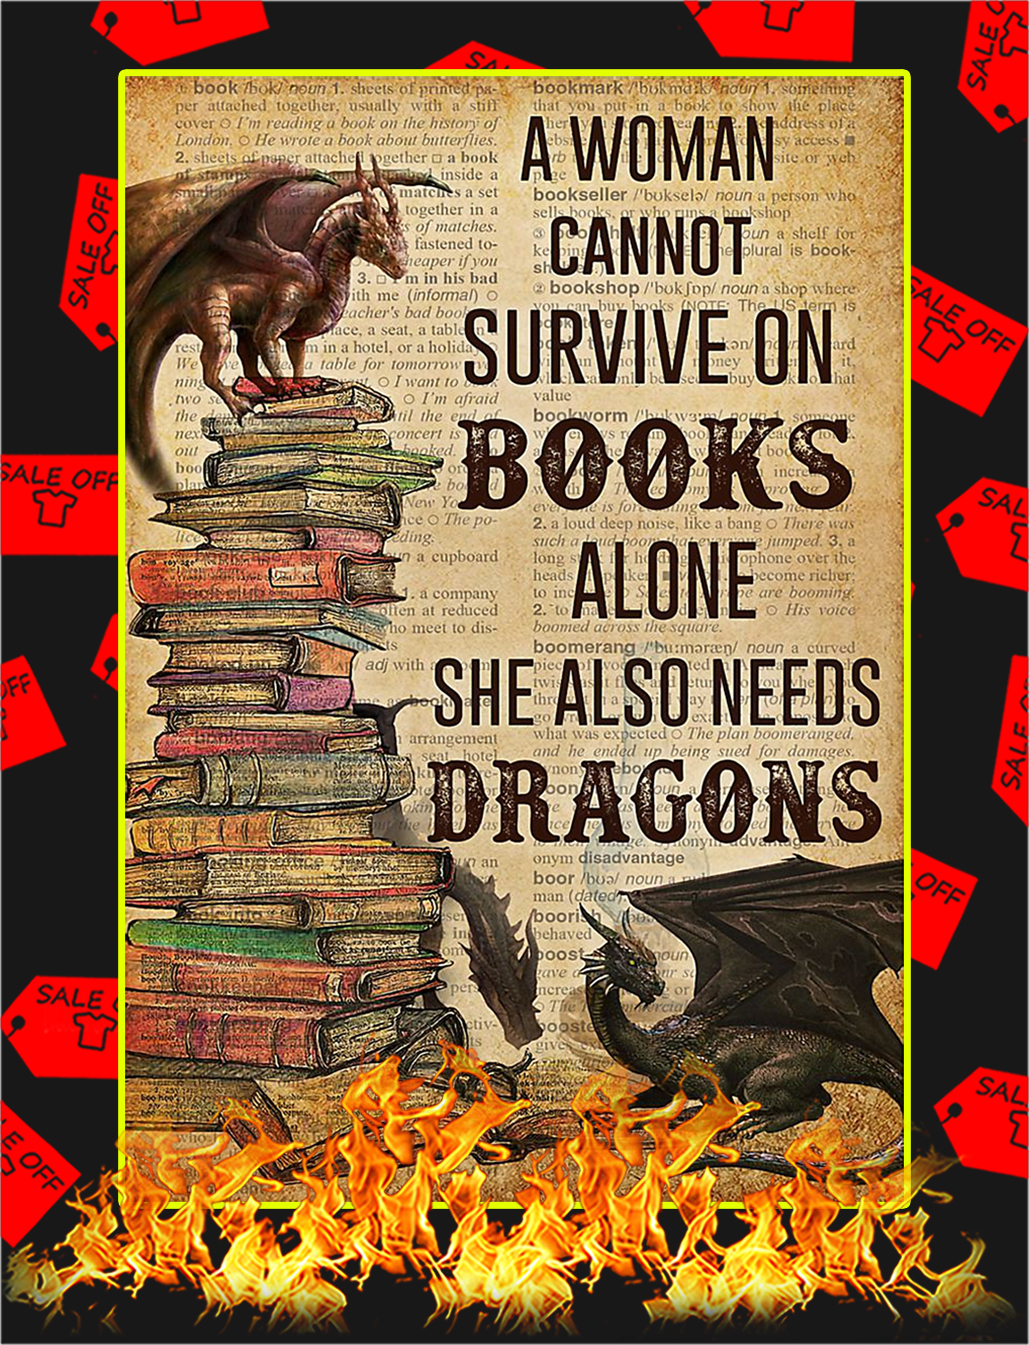 A woman cannot survive on books alone needs dragons poster - A2